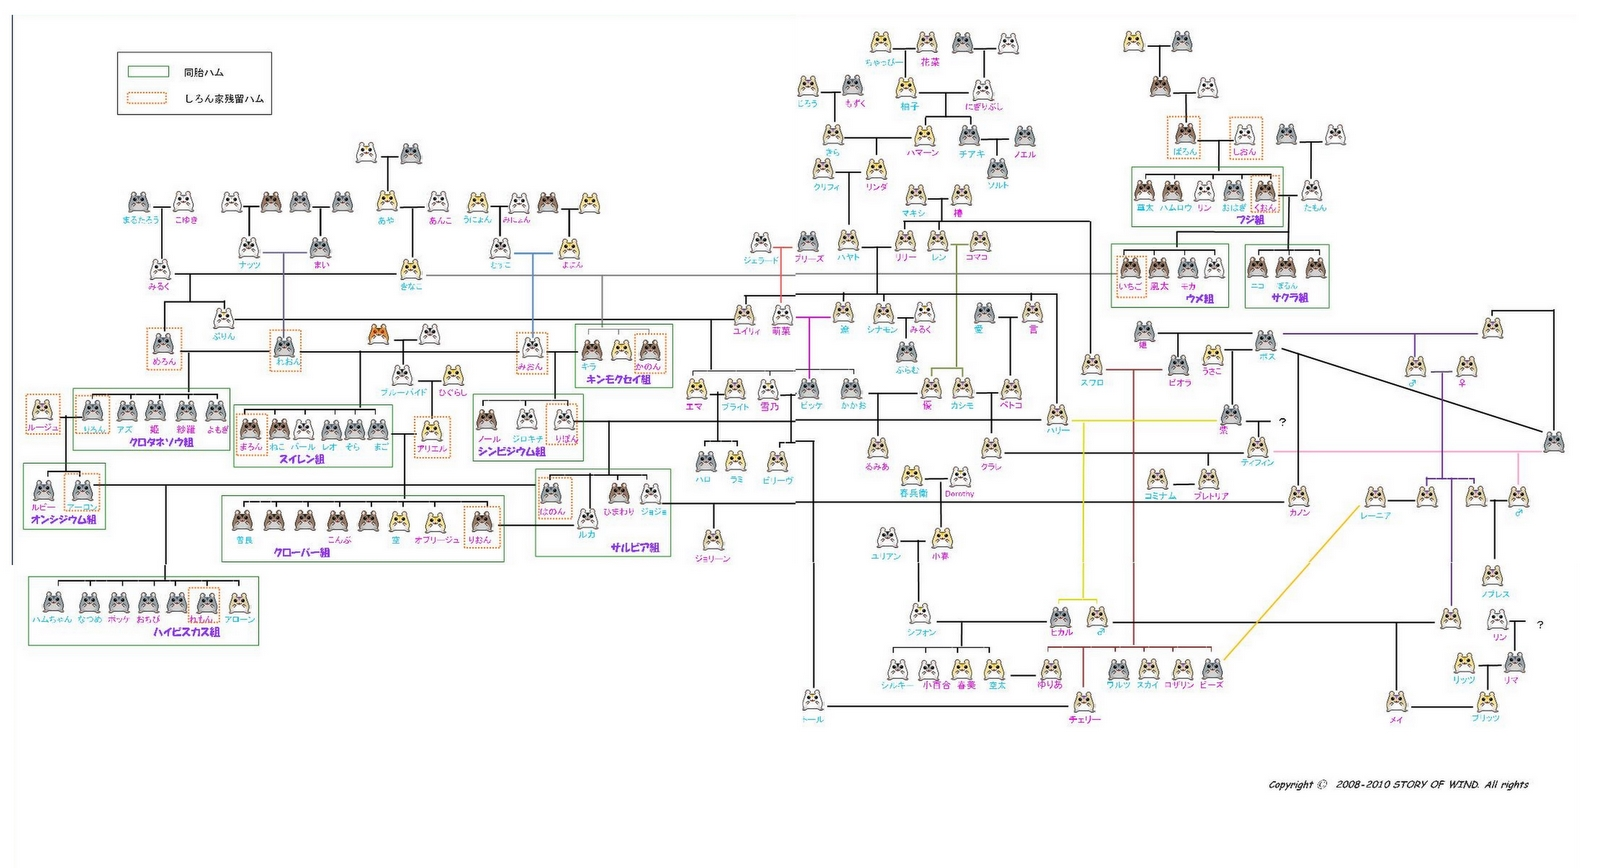 Genealogicaltree